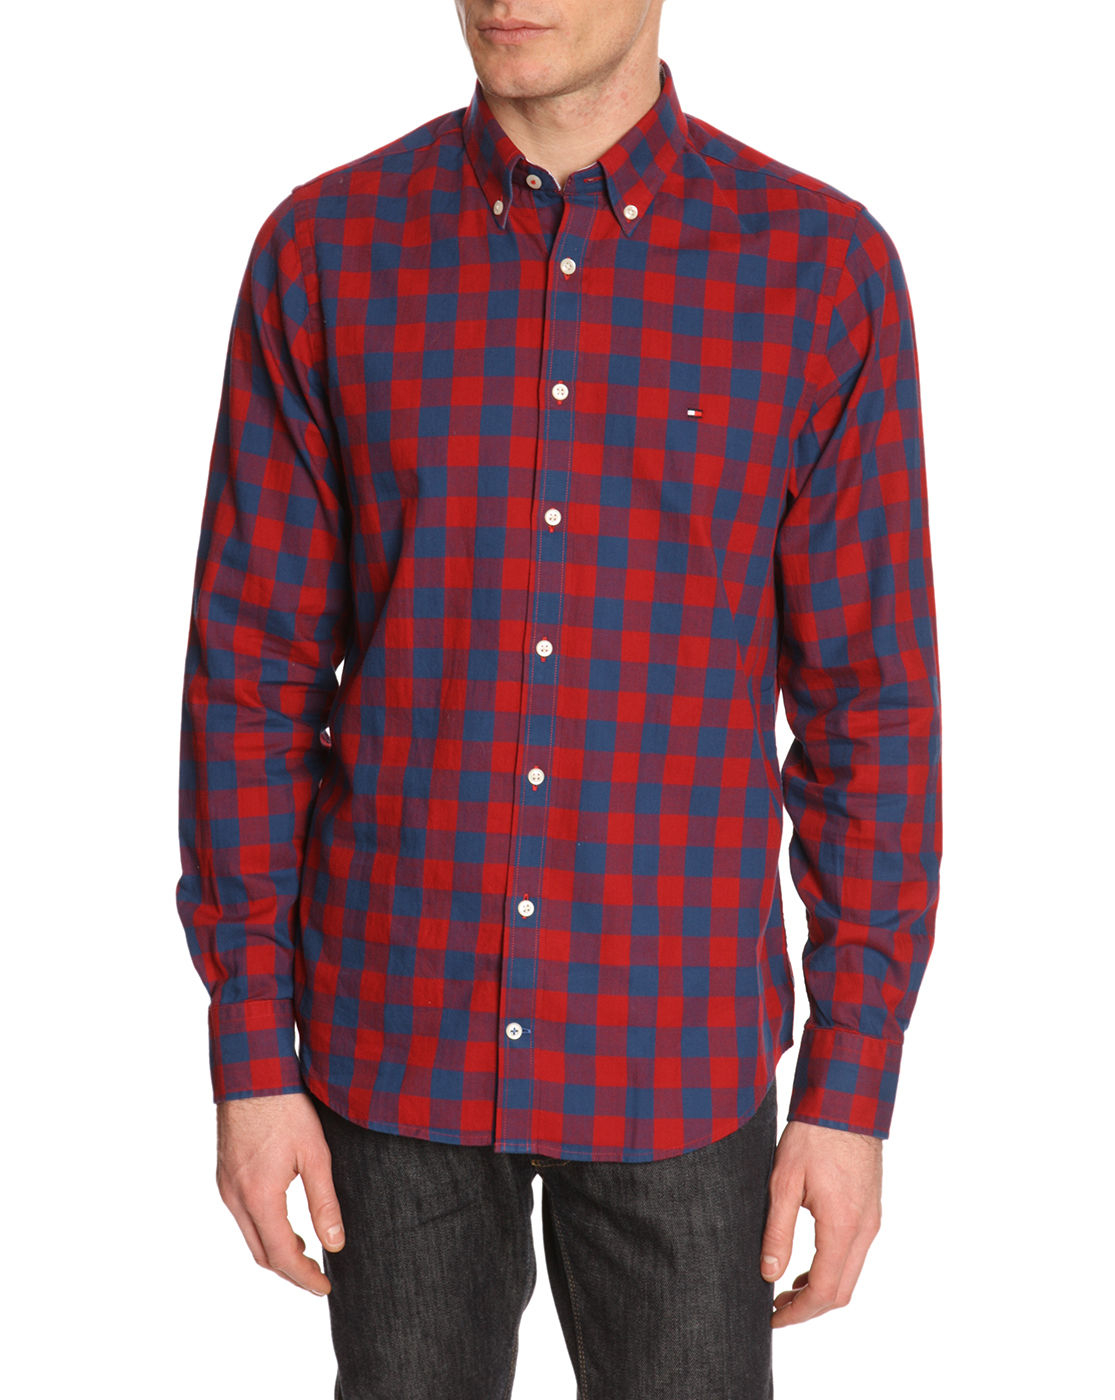 tommy hilfiger red and blue new york fit plaid check shirt. Black Bedroom Furniture Sets. Home Design Ideas